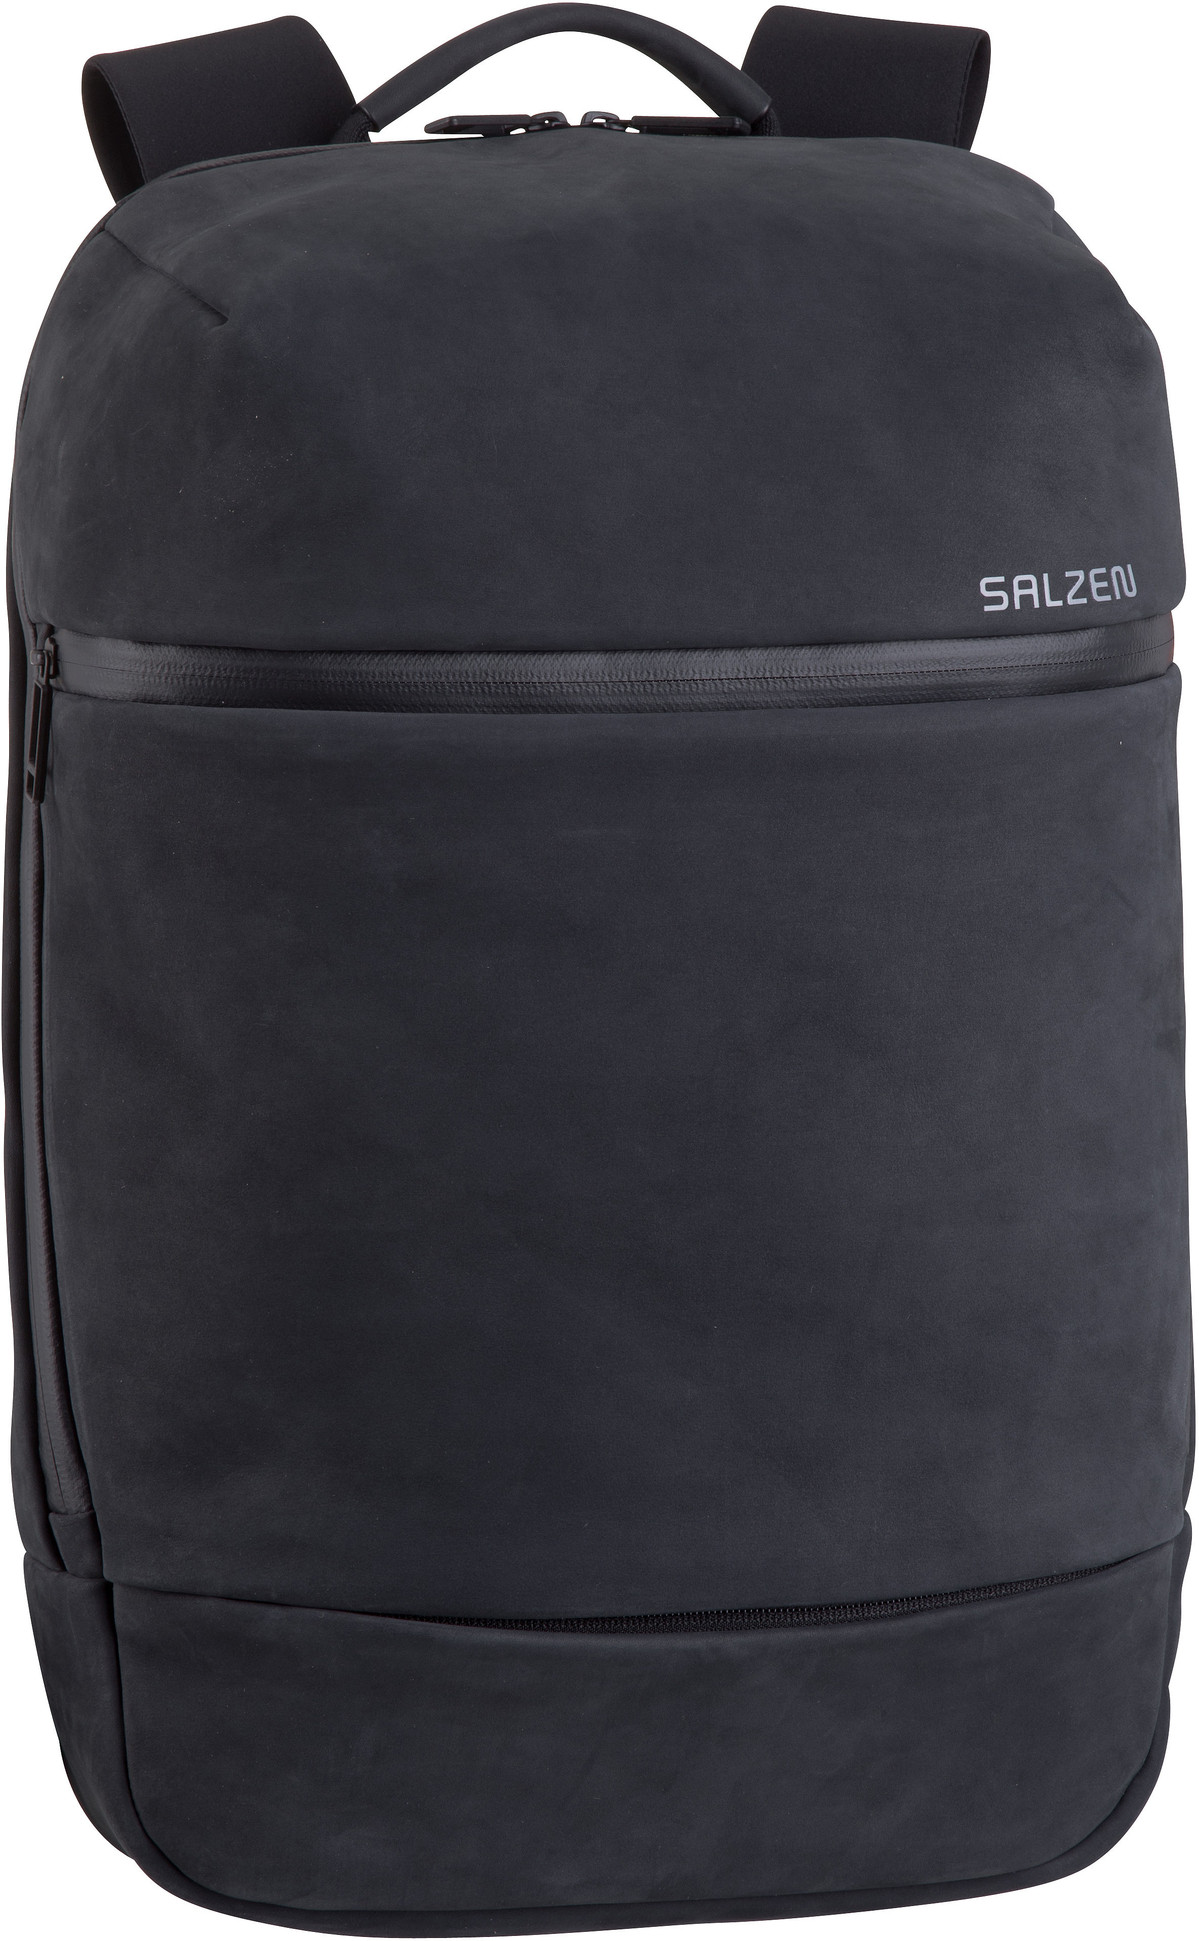 Laptoprucksack Savvy Leather Charcoal Black (15 Liter)